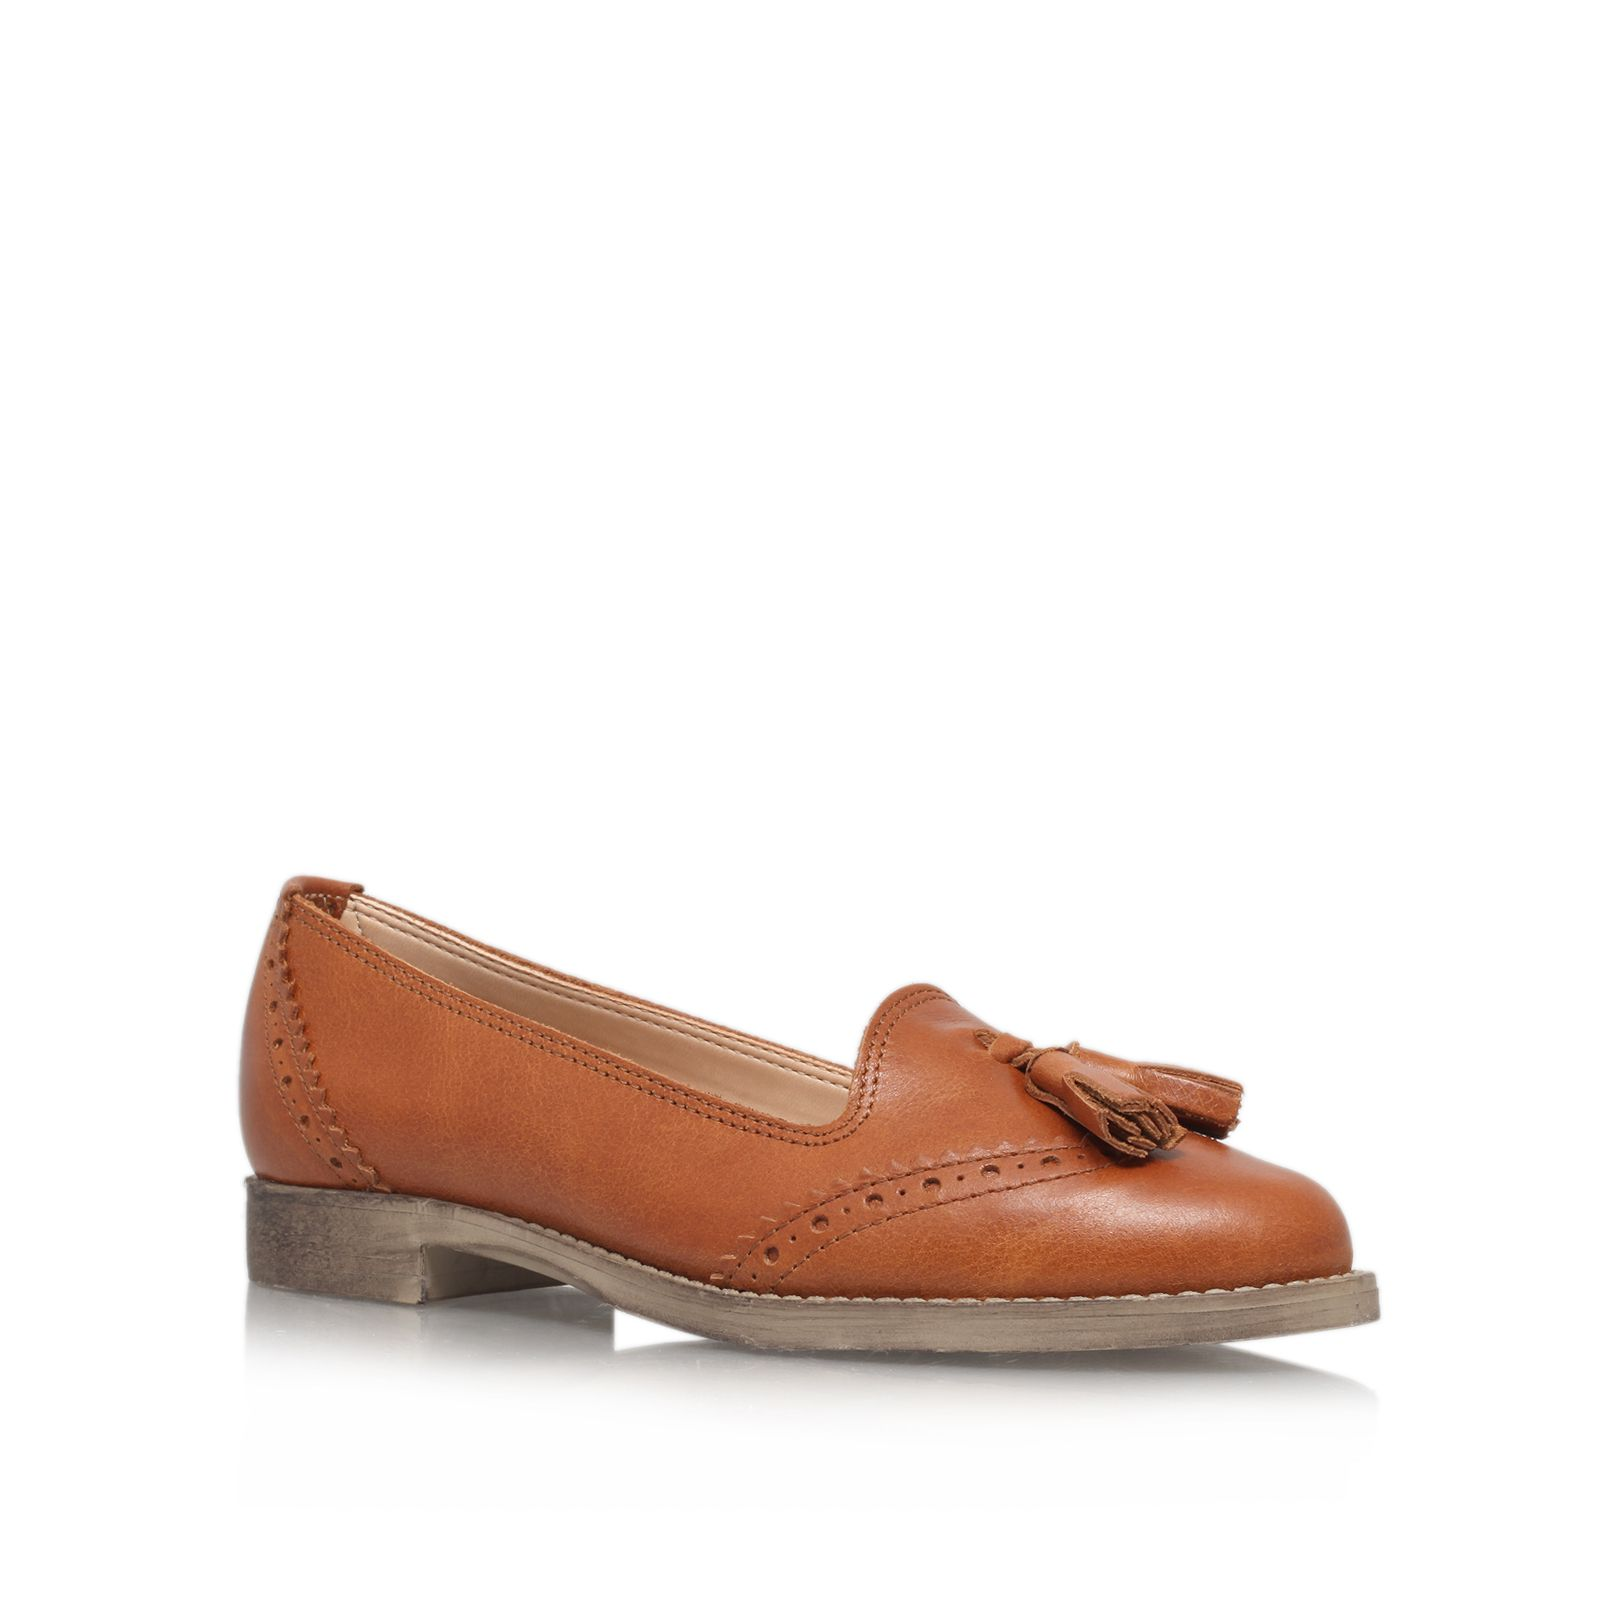 Norma flat loafers